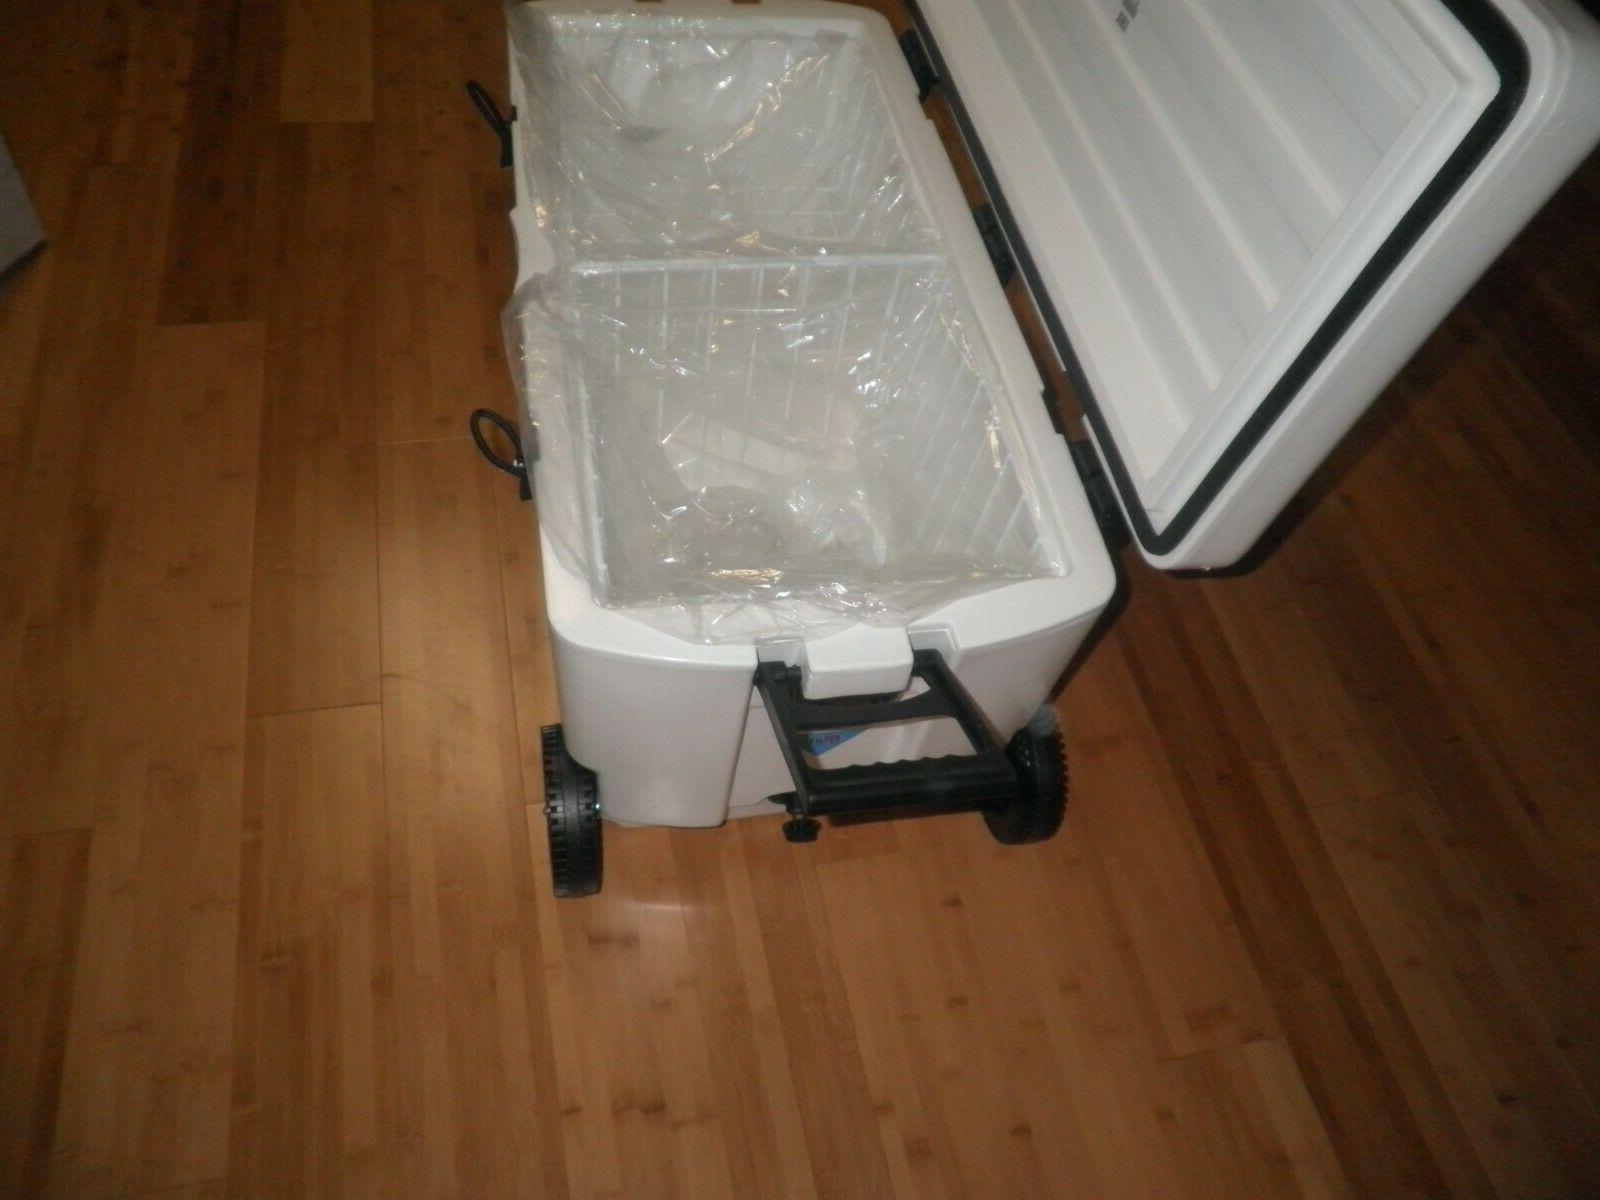 70 liter ice mate by evakool large with wheels 2 baskets